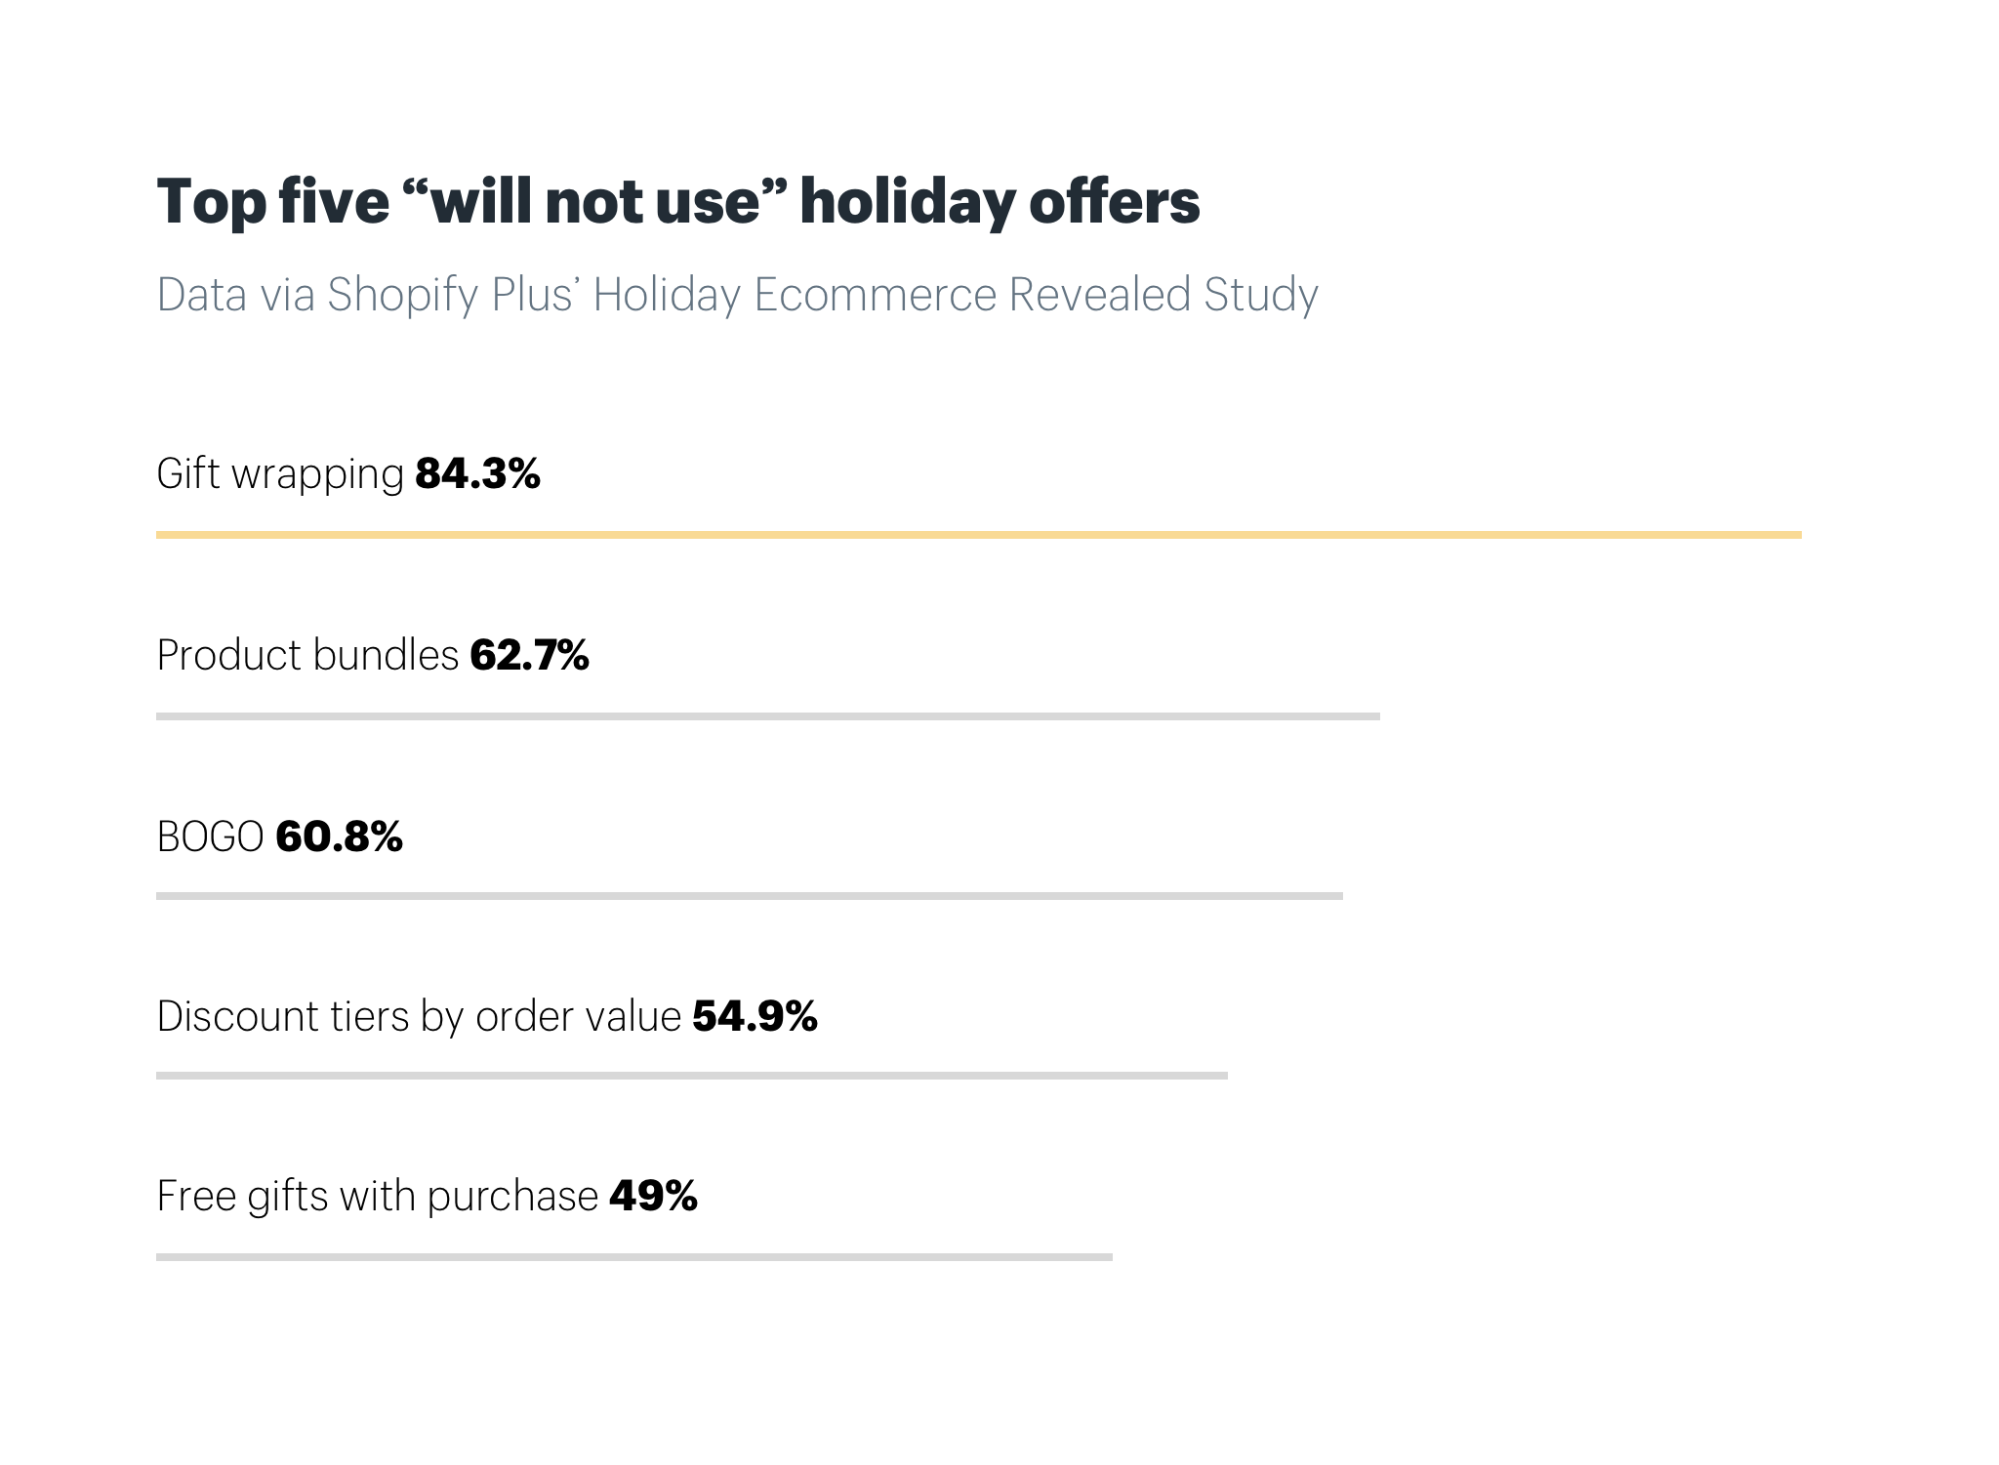 Top five will not use holiday offers for large ecommerce brands